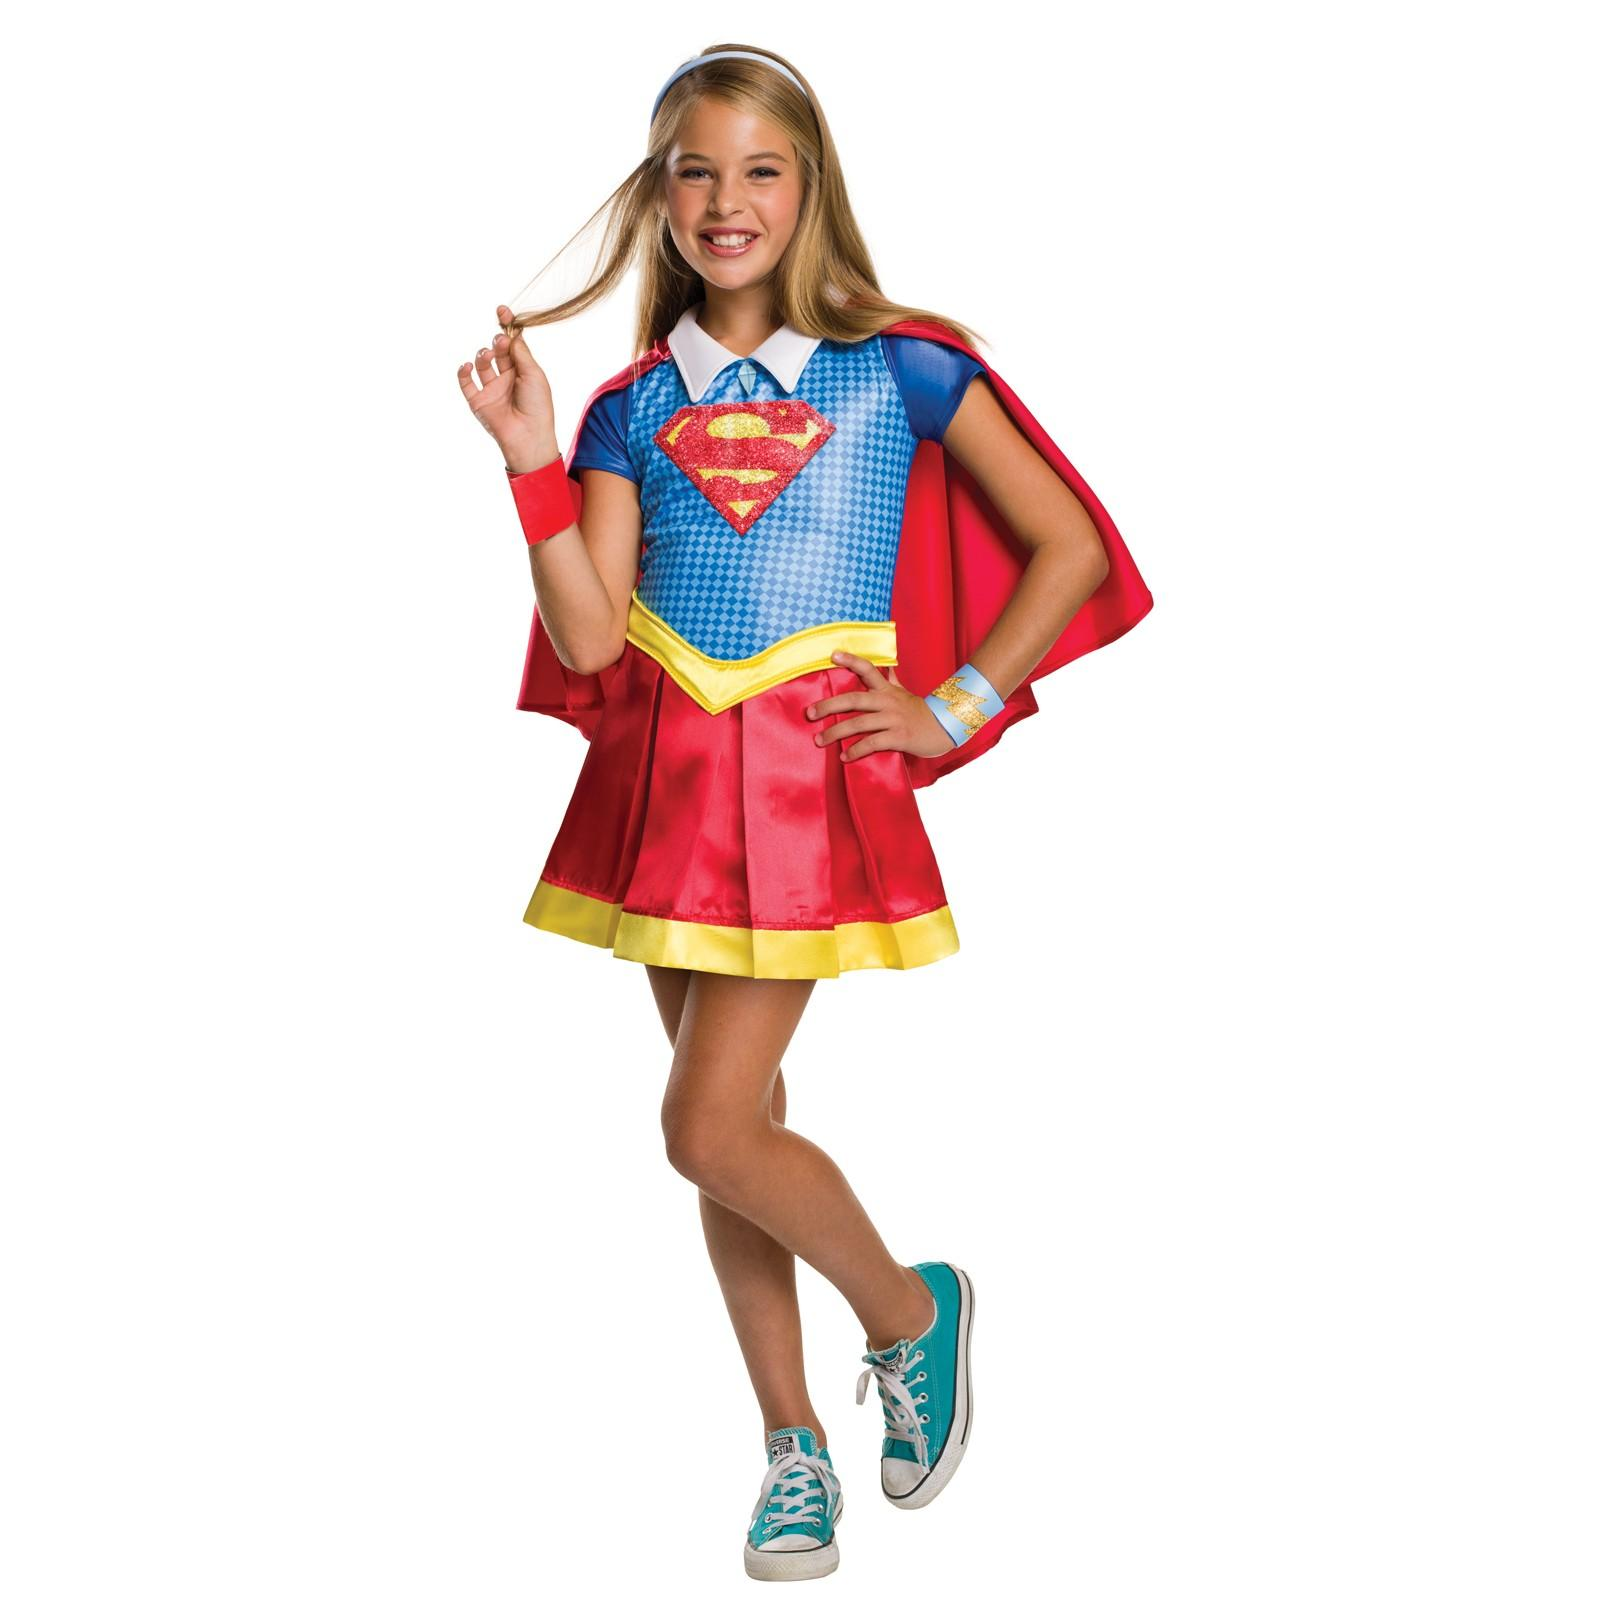 DC Superhero Girls Supergirl Deluxe Child Costume M  sc 1 st  Walmart & Supergirl Costumes